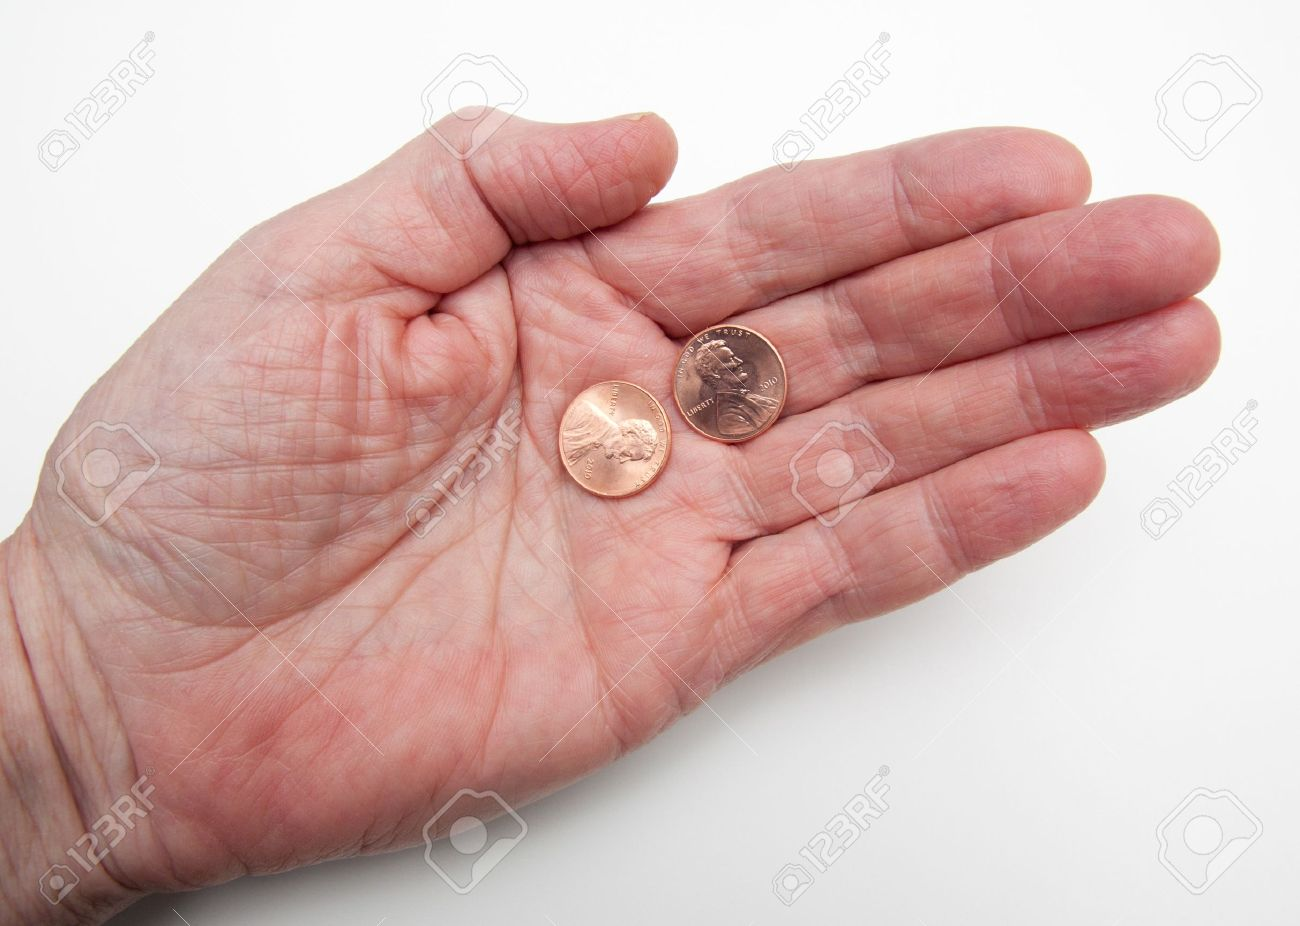 Hand Holding Two Pennies Over White Representing The Concept My Two Cents Worth Add To Likebox